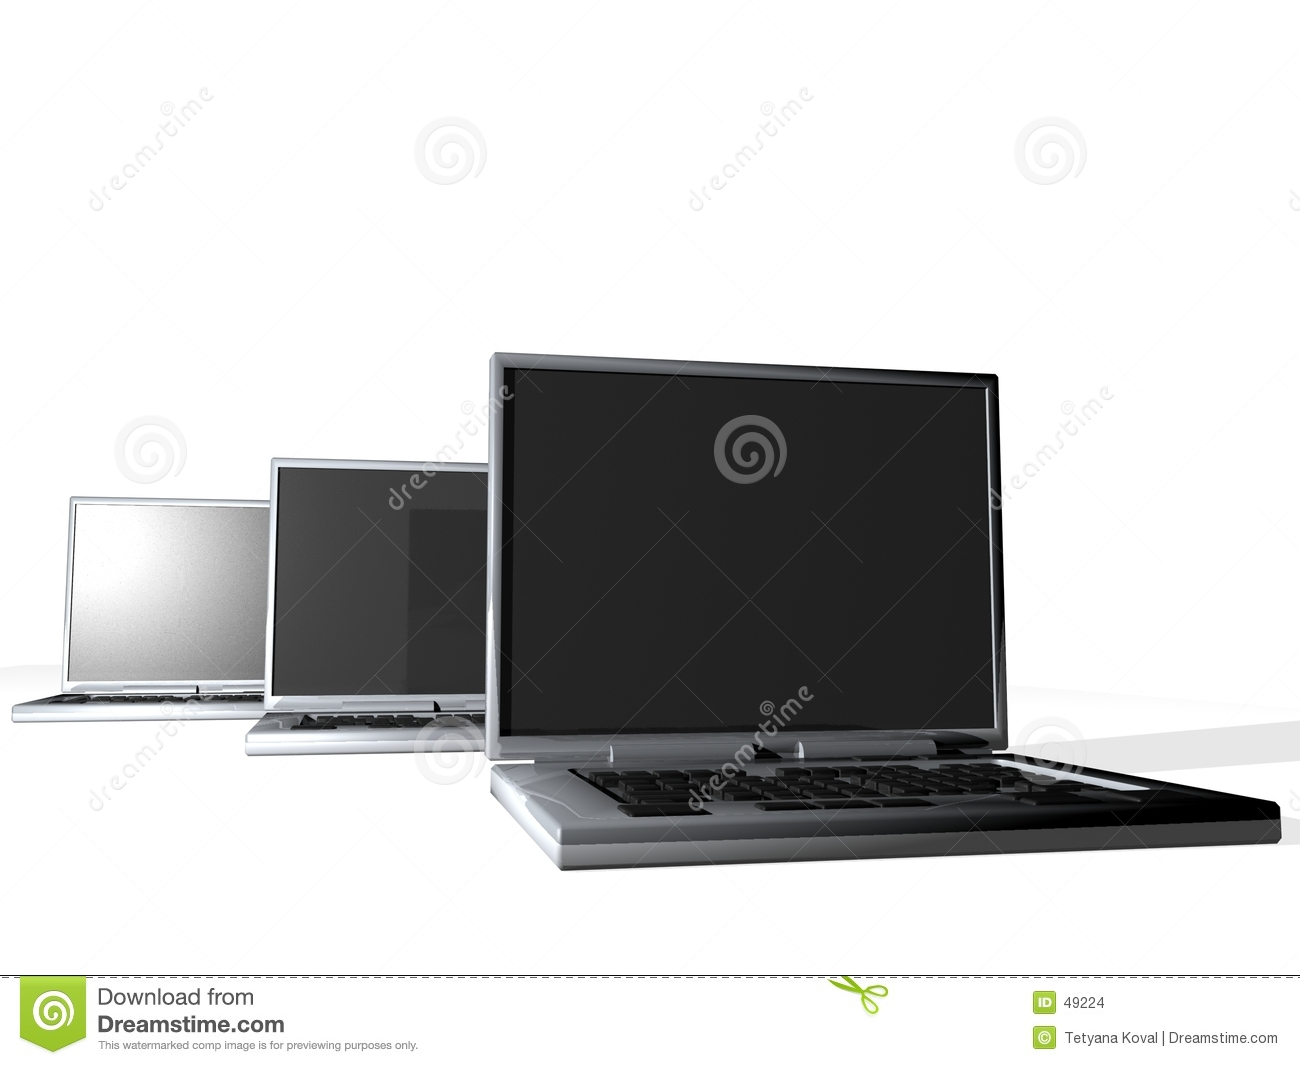 Group of laptops